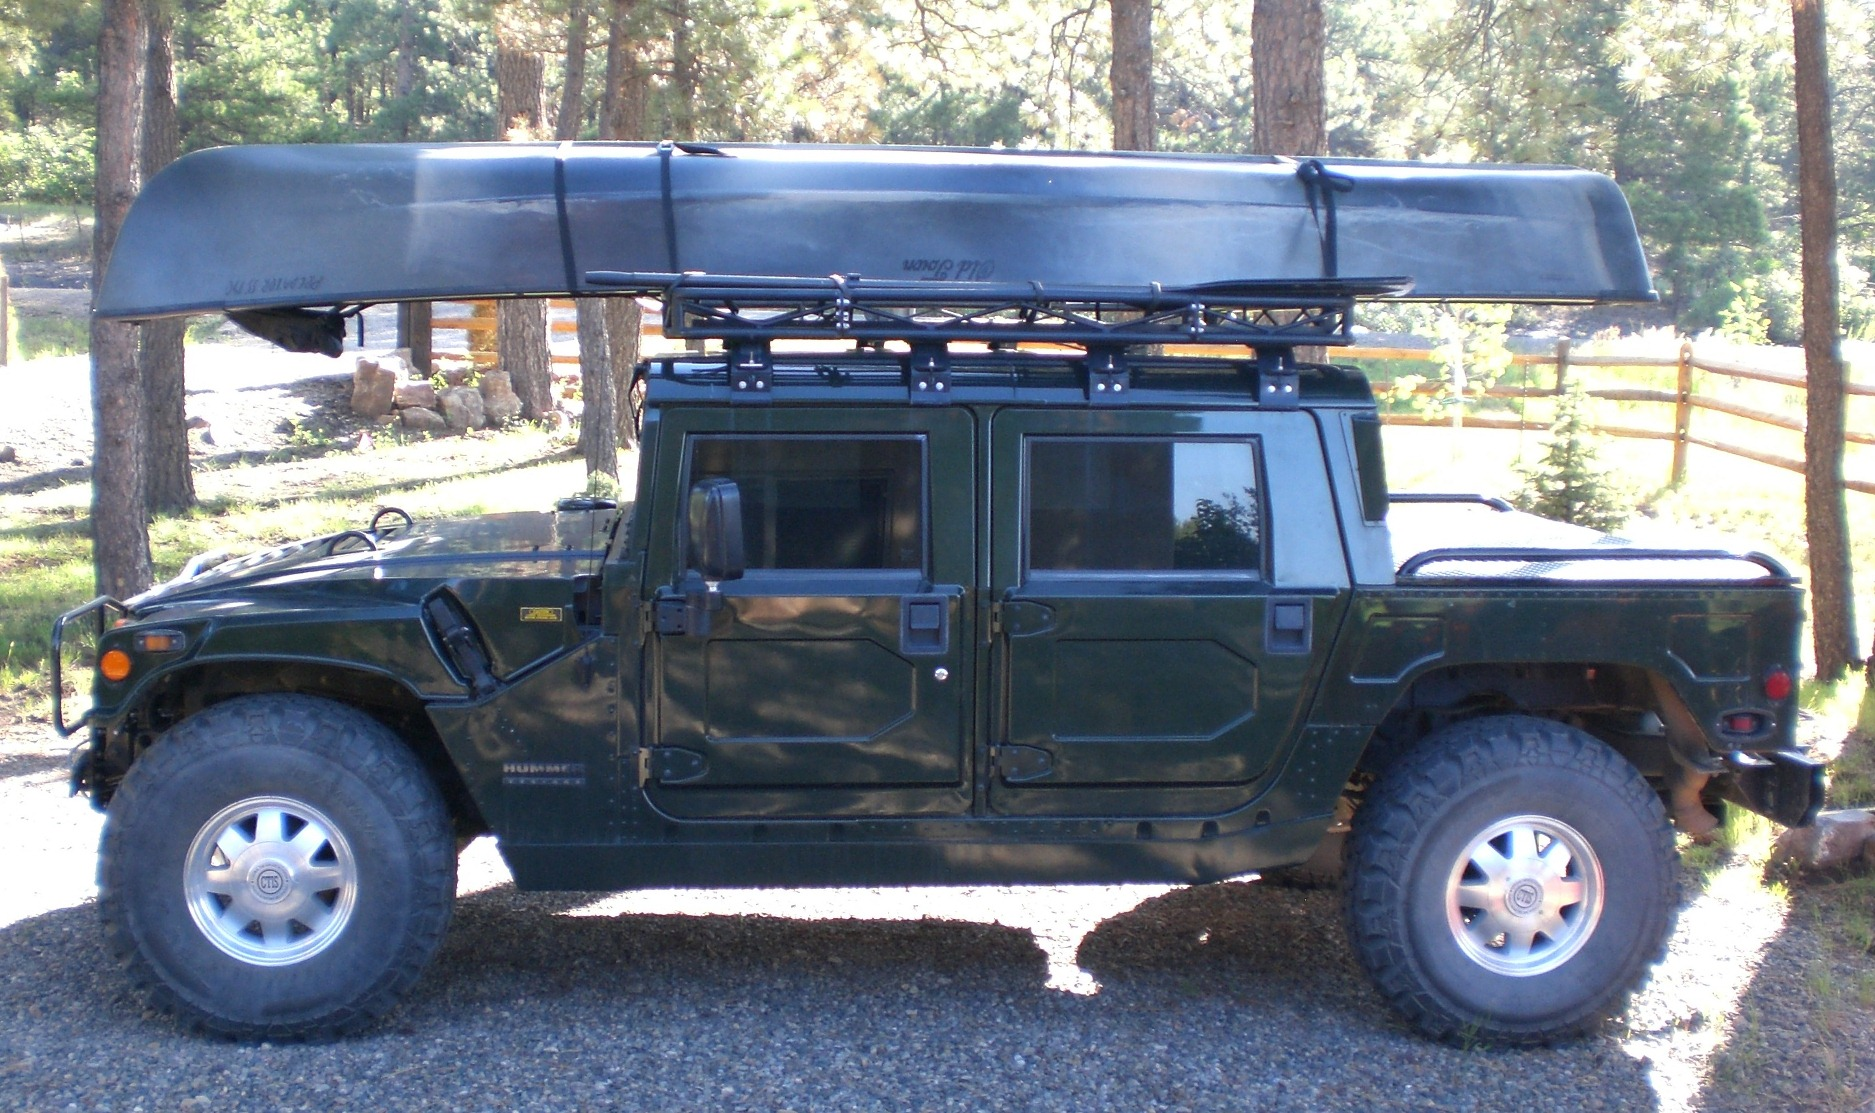 Used Hummer H3T Amazing Vehicles free download image Rocker Panel and Driveline Protection. Luggage Rack Wallpaper